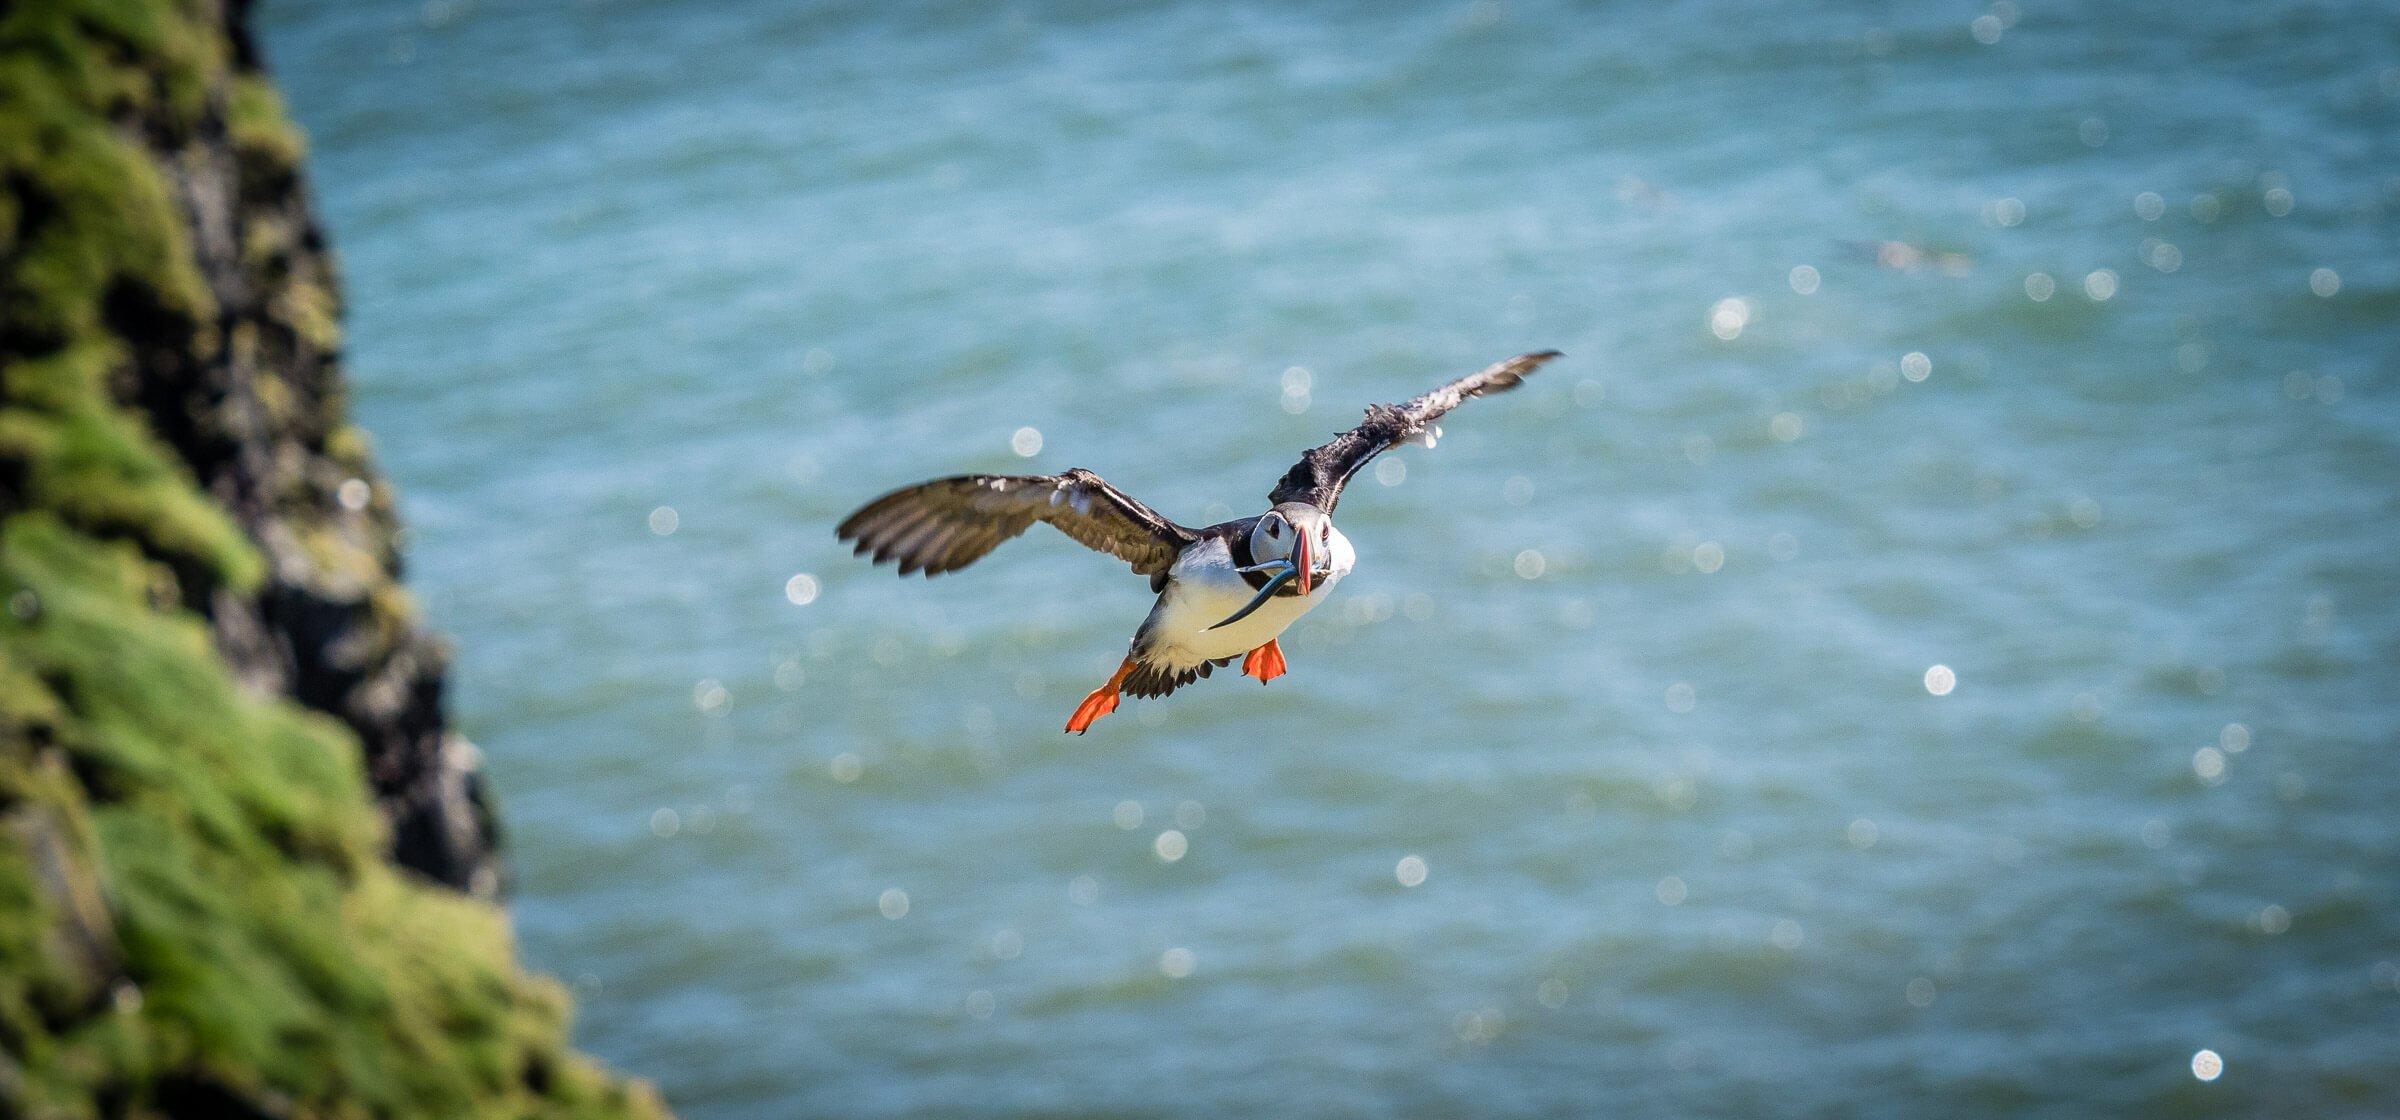 flying puffin with fish in beak, in Iceland